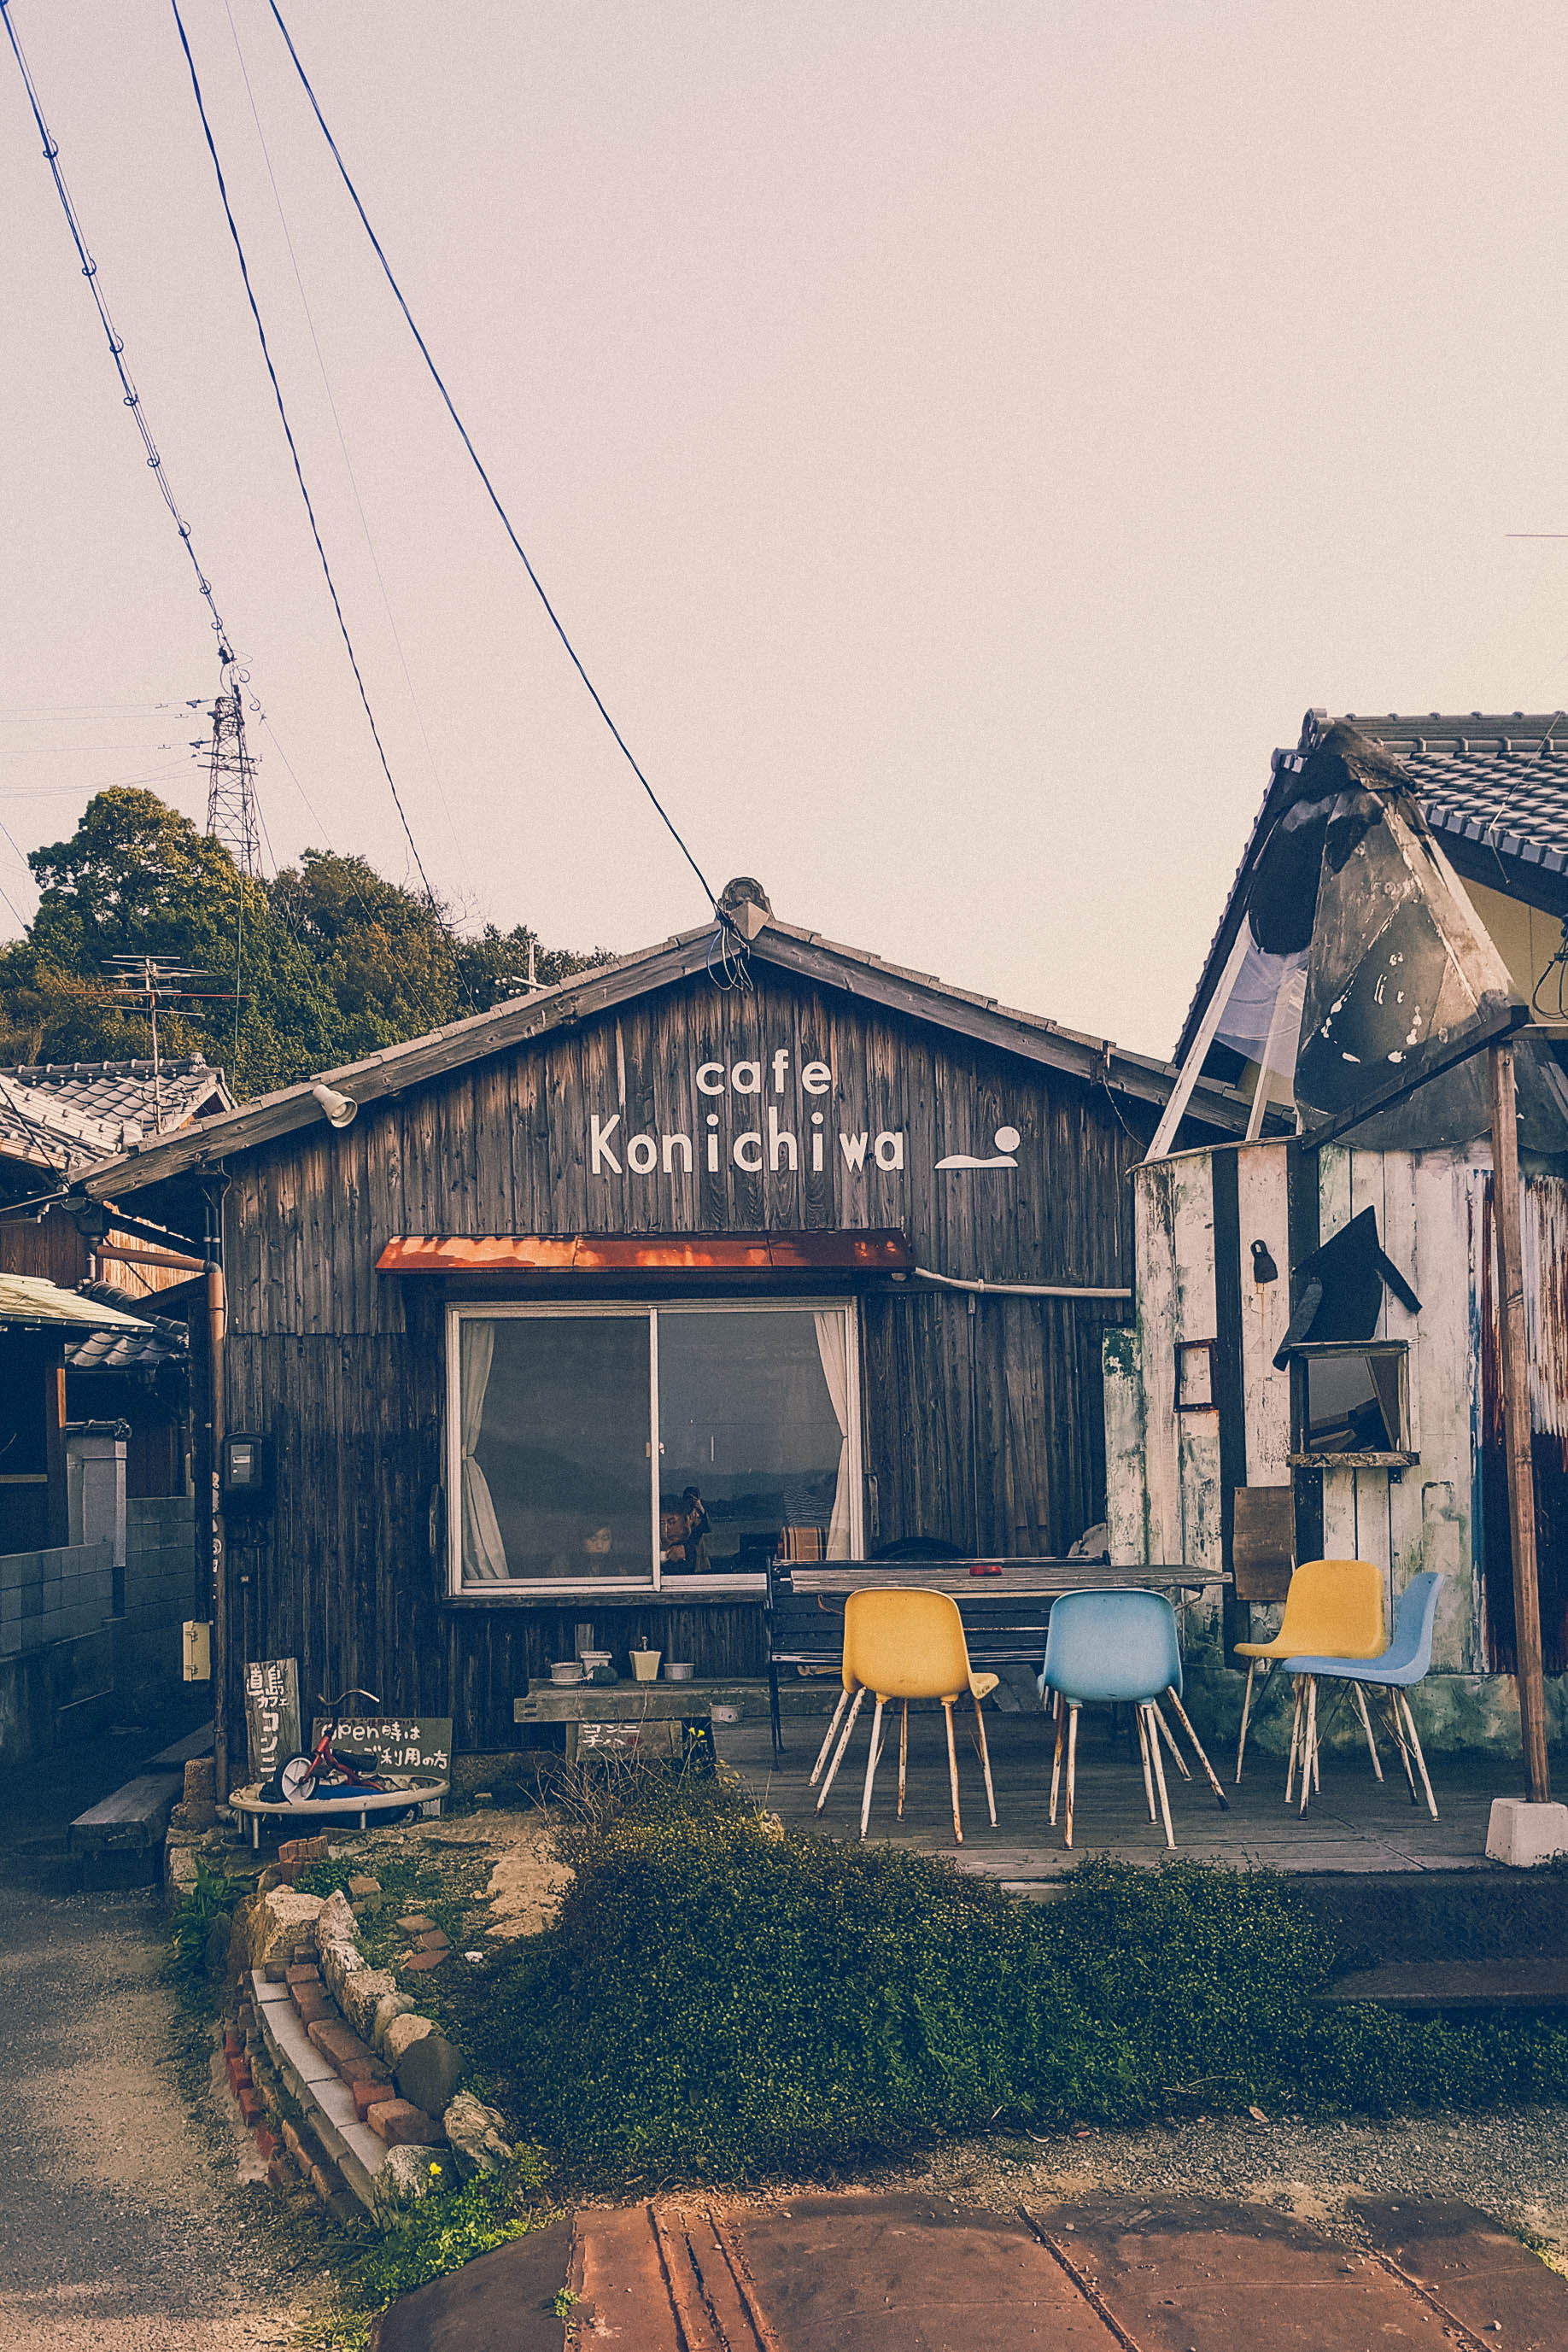 Cafe Konichiwa, Honmura port